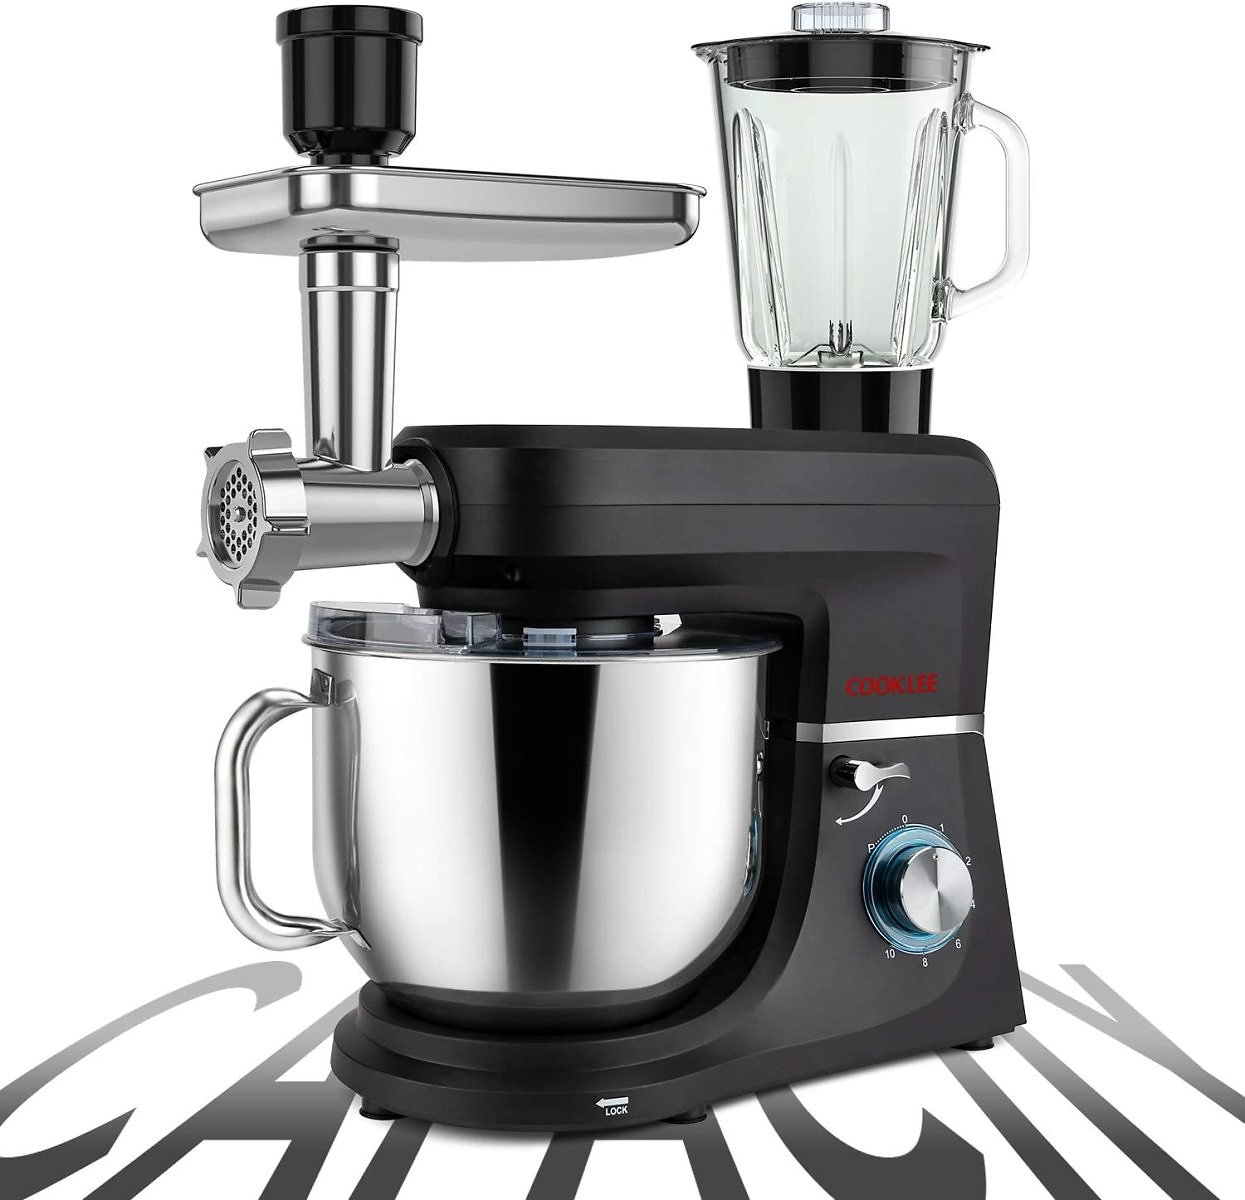 Prime Day Deal: 8.5 Qt 6-IN-1 Multifunctional Electric Kitchen Mixer with 9 Accessories